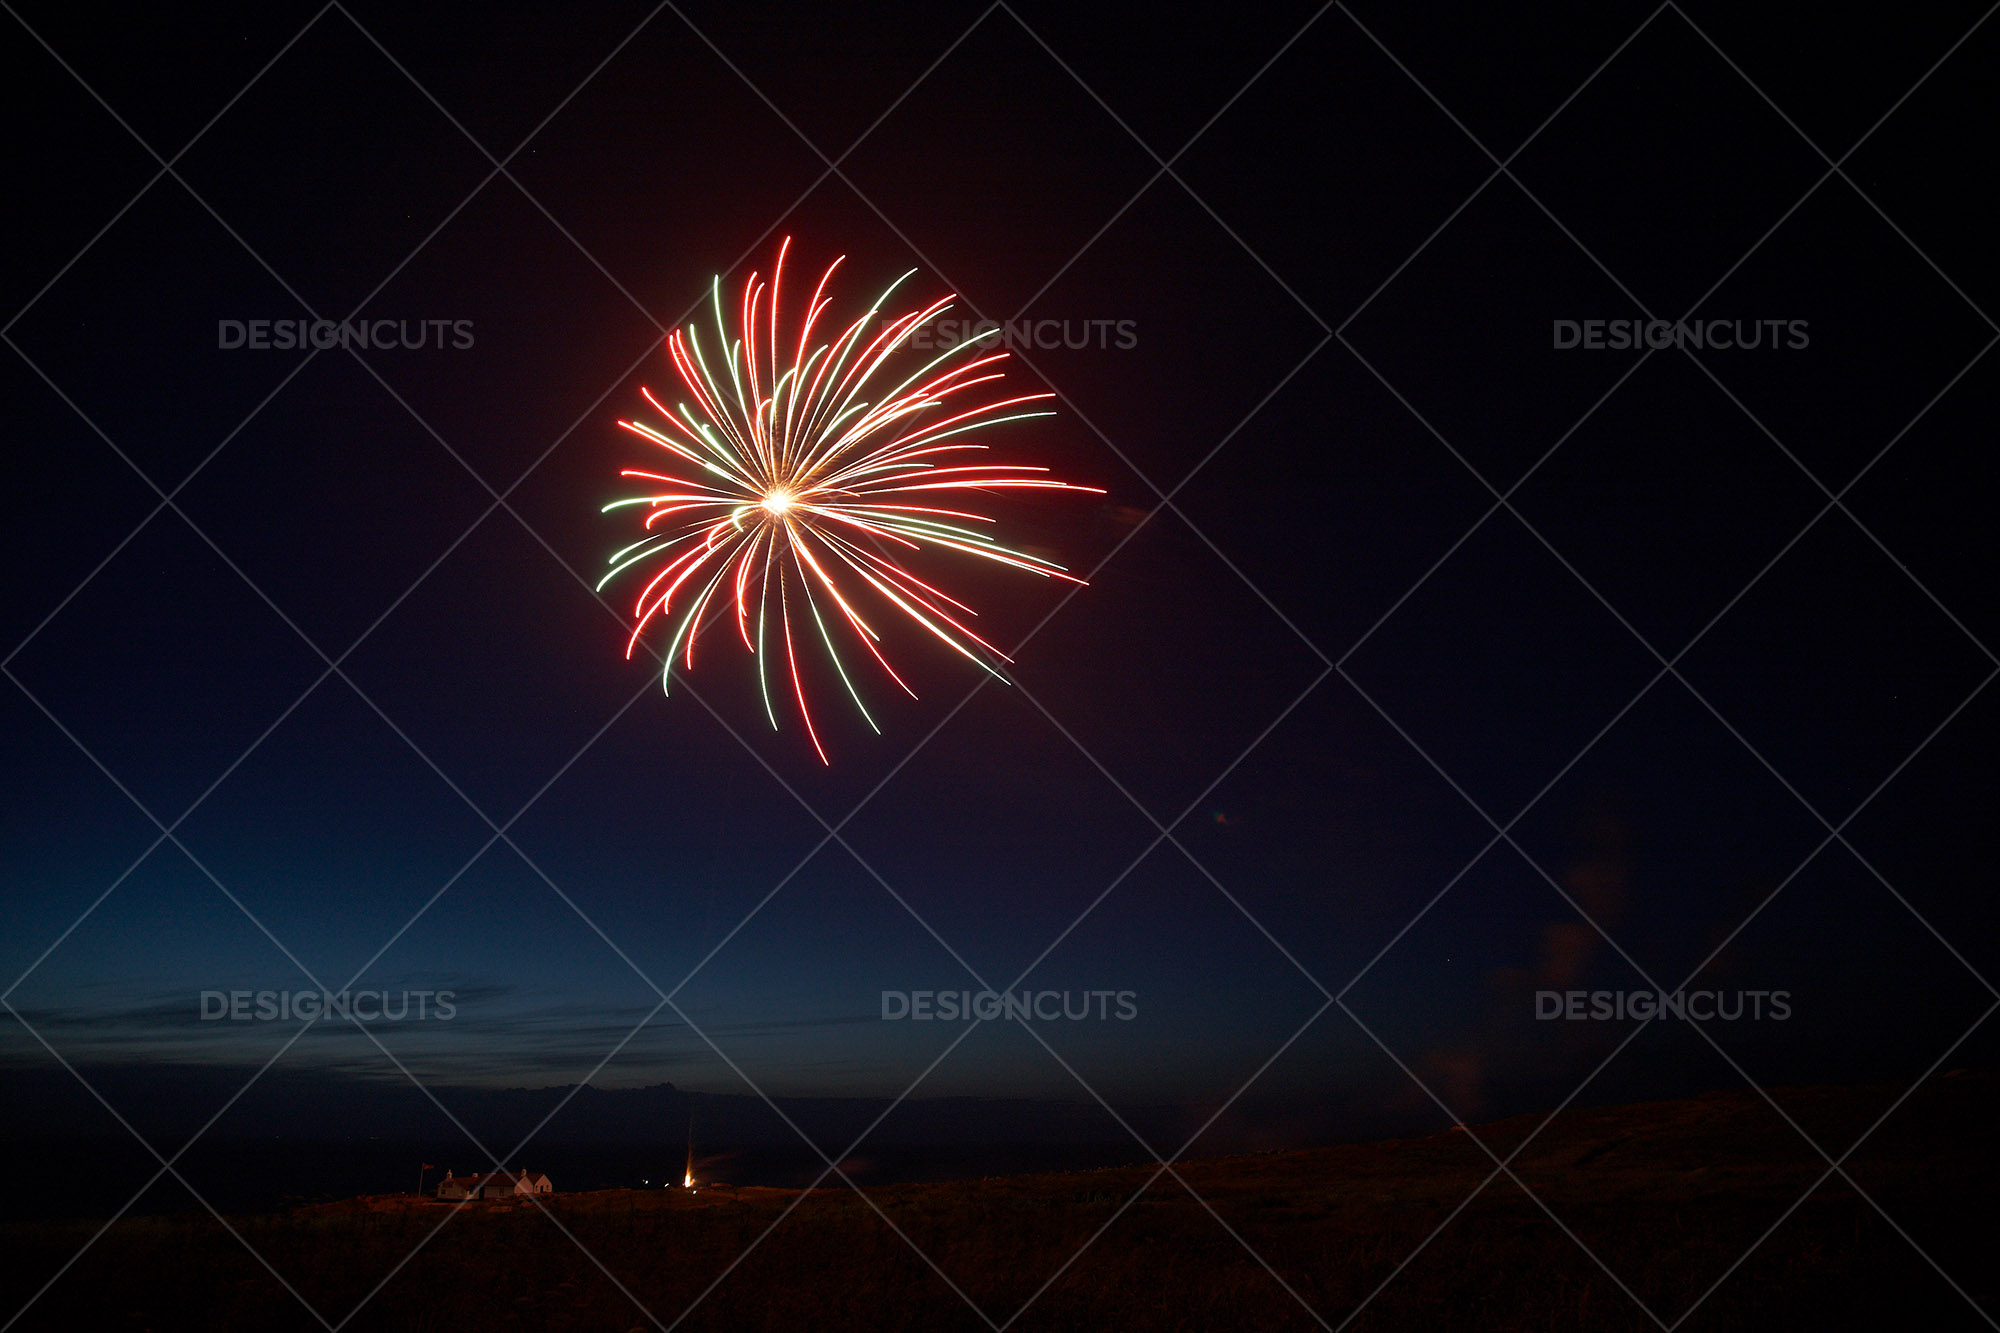 Motion Blurred Fireworks Light Up Night Sky 3